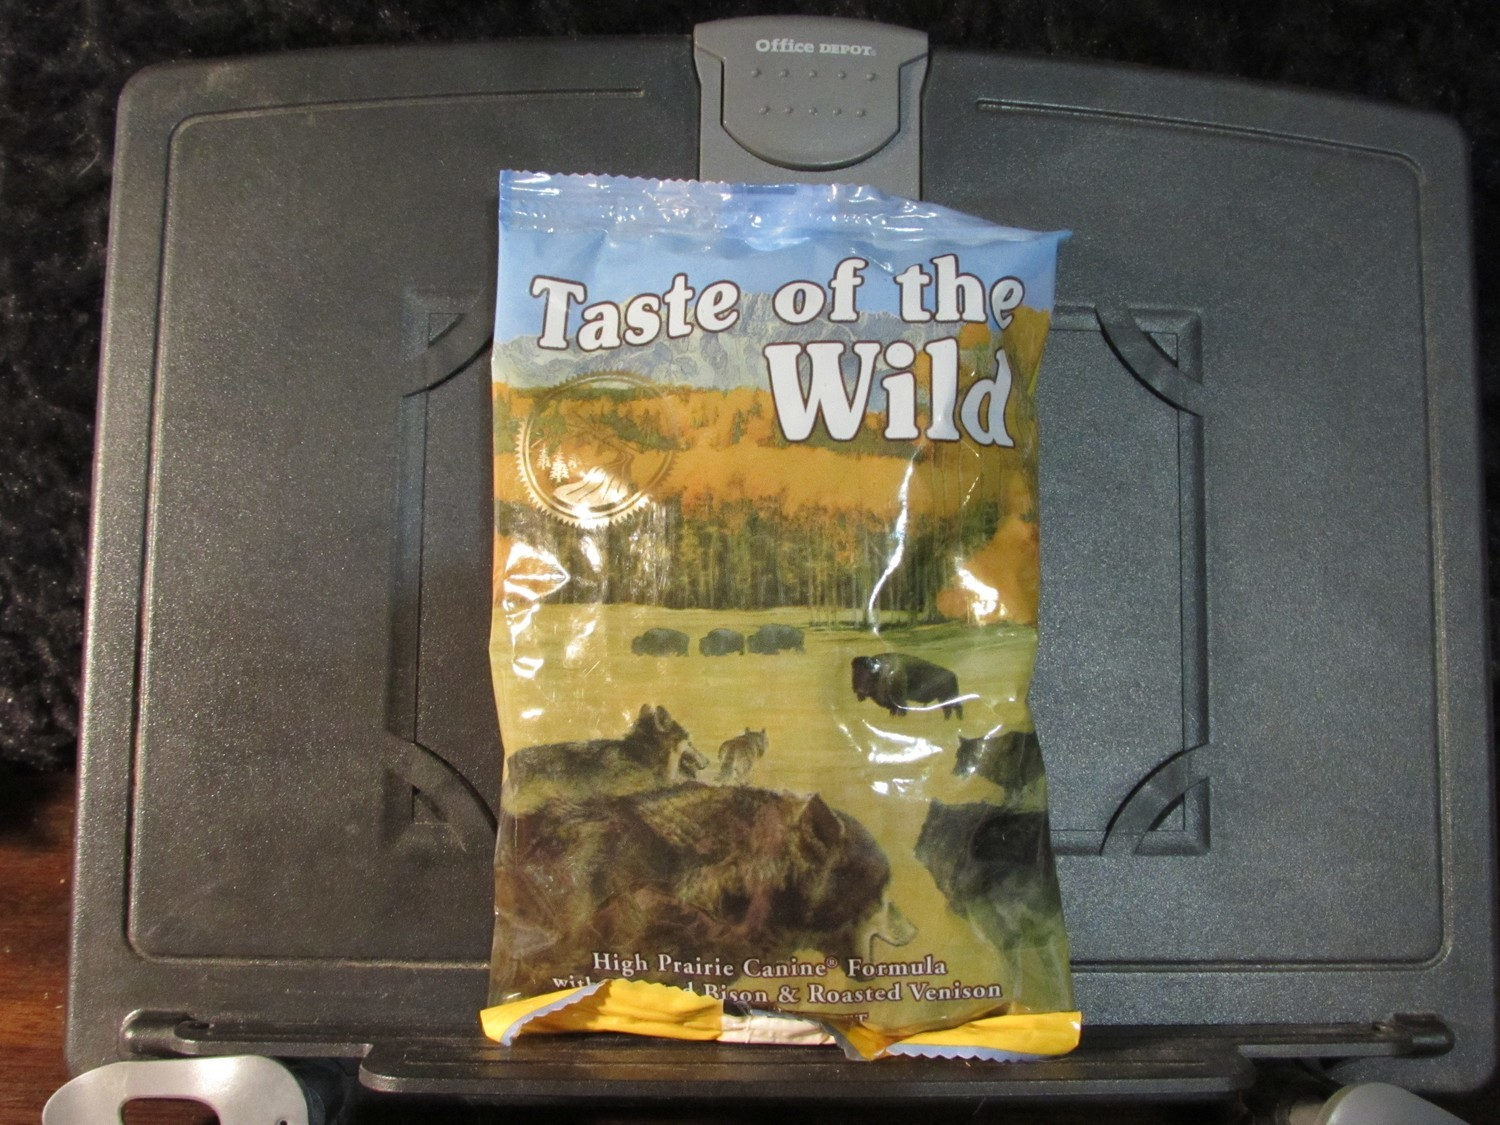 Taste of the Wild High Prairie Roasted Bison & Venison Dog 6 oz (8/18) (A.Q1)